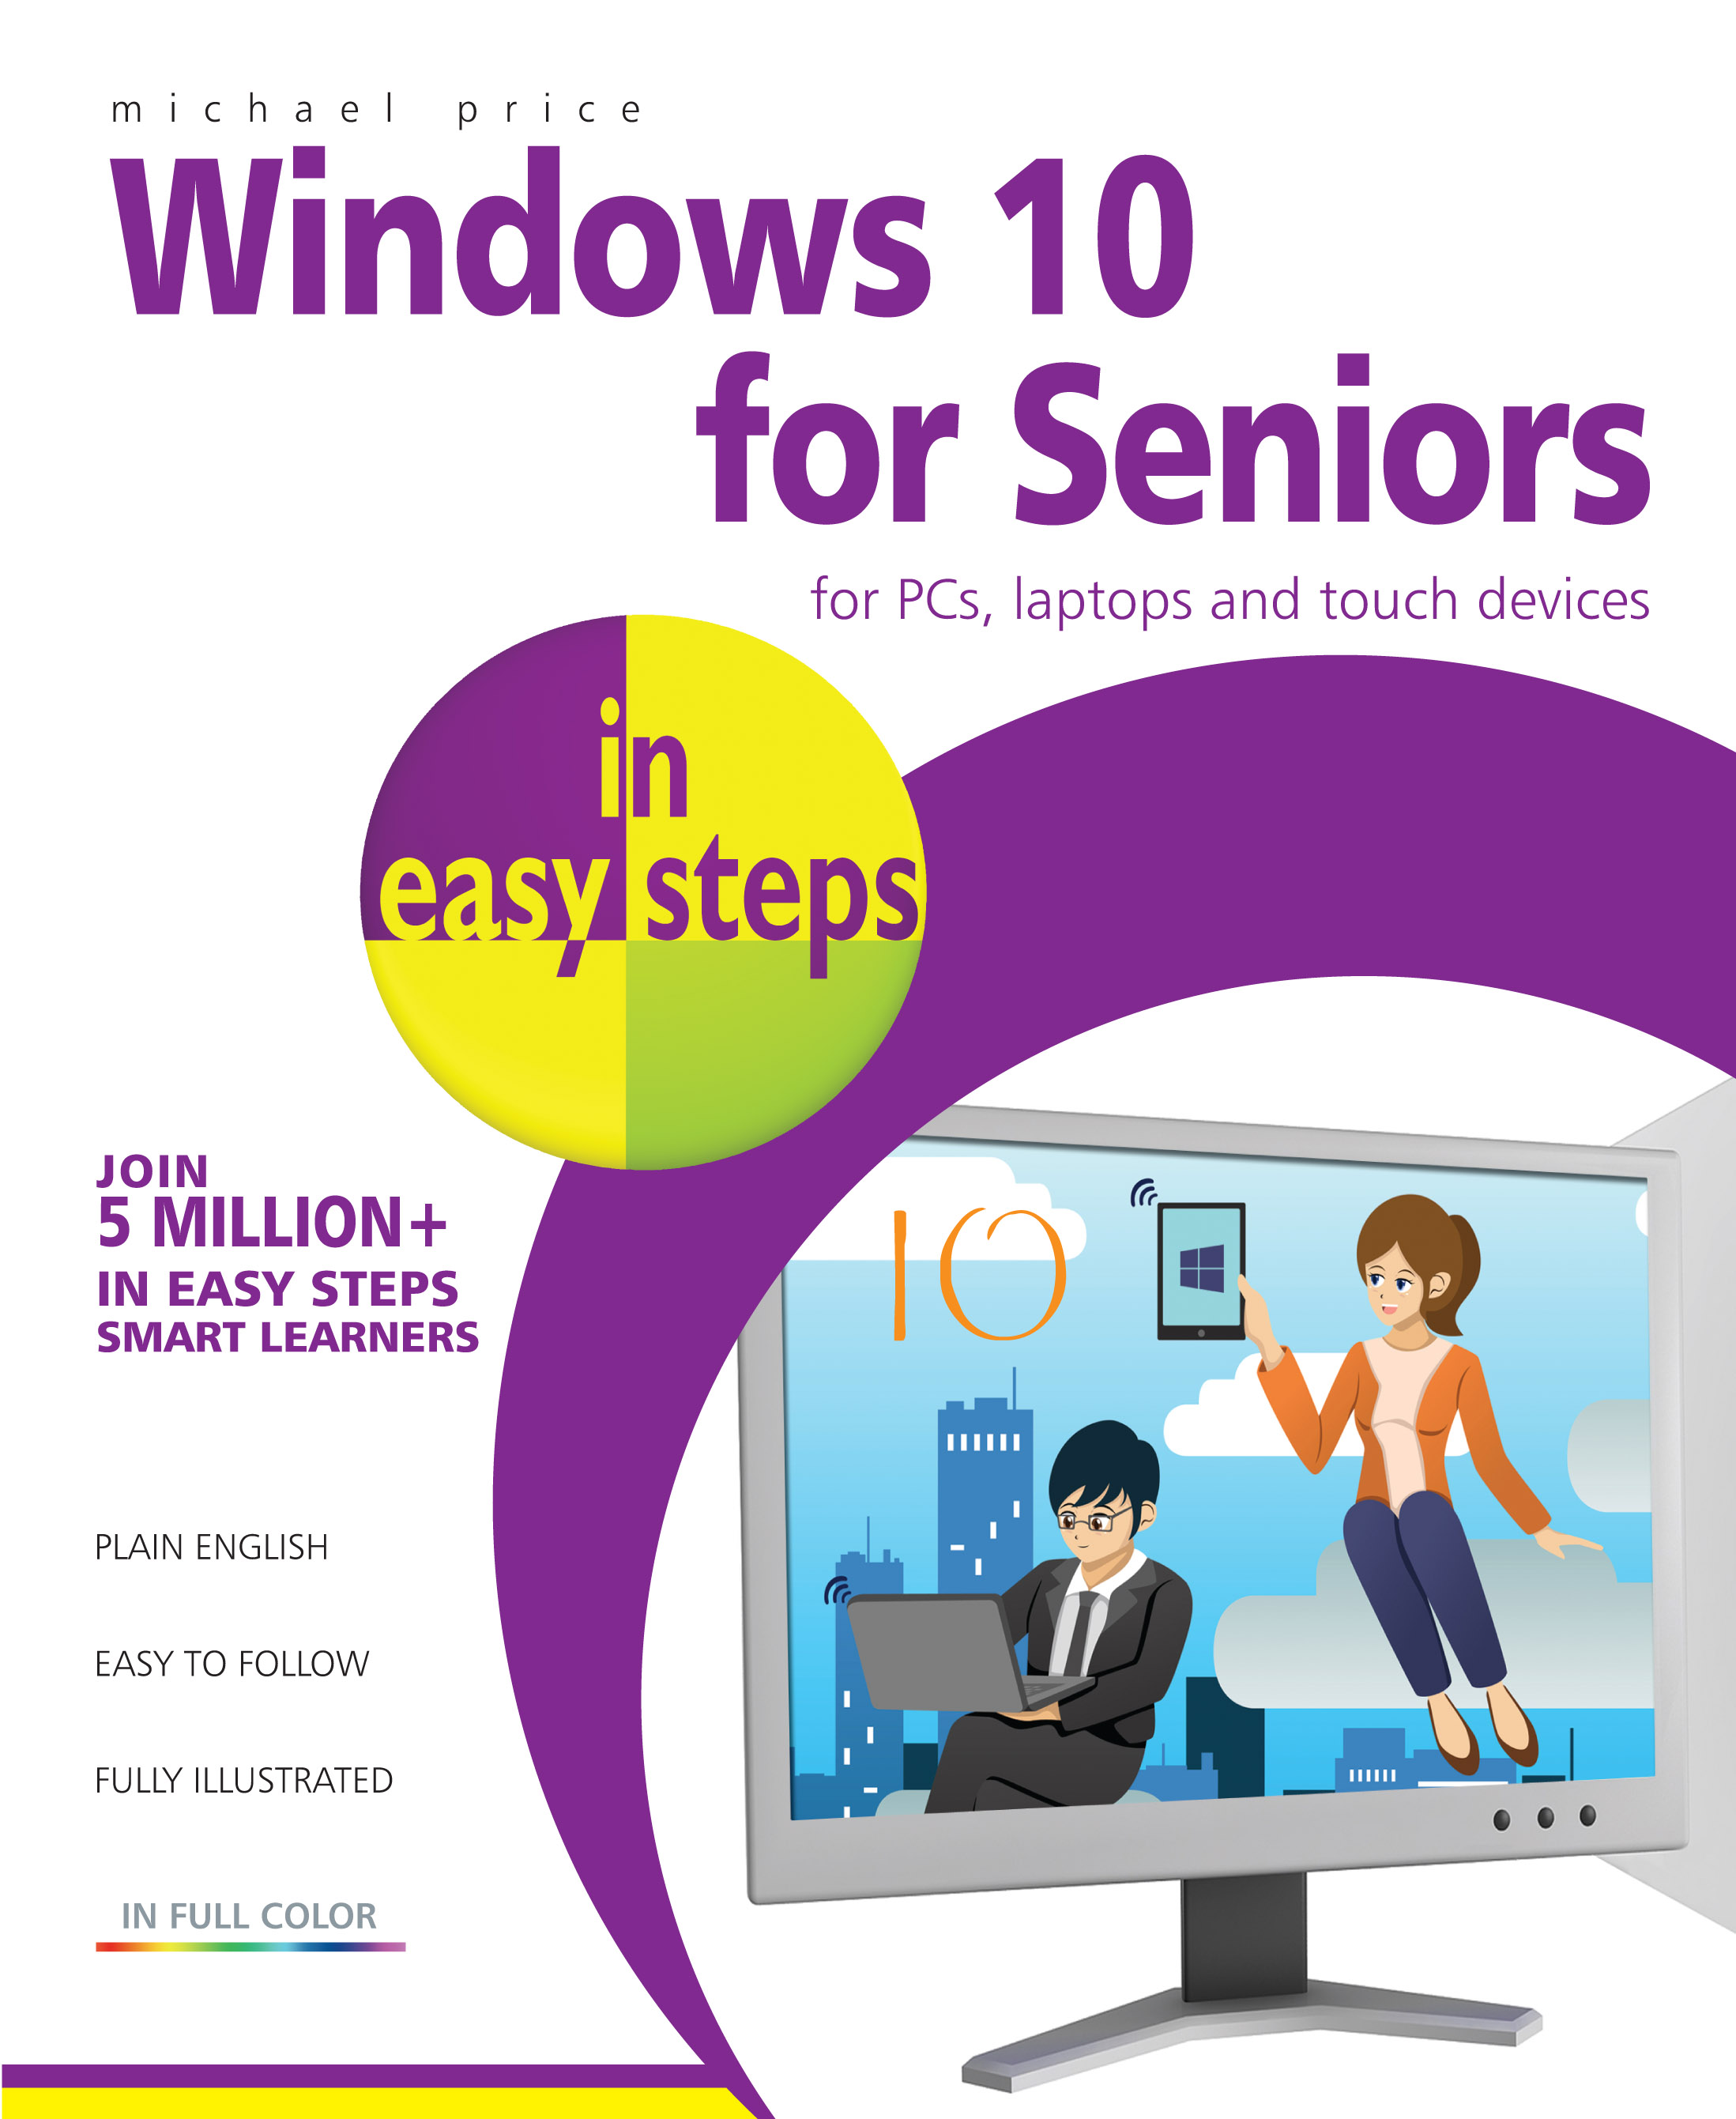 Windows 10 for Seniors in easy steps 9781840786446 PDF